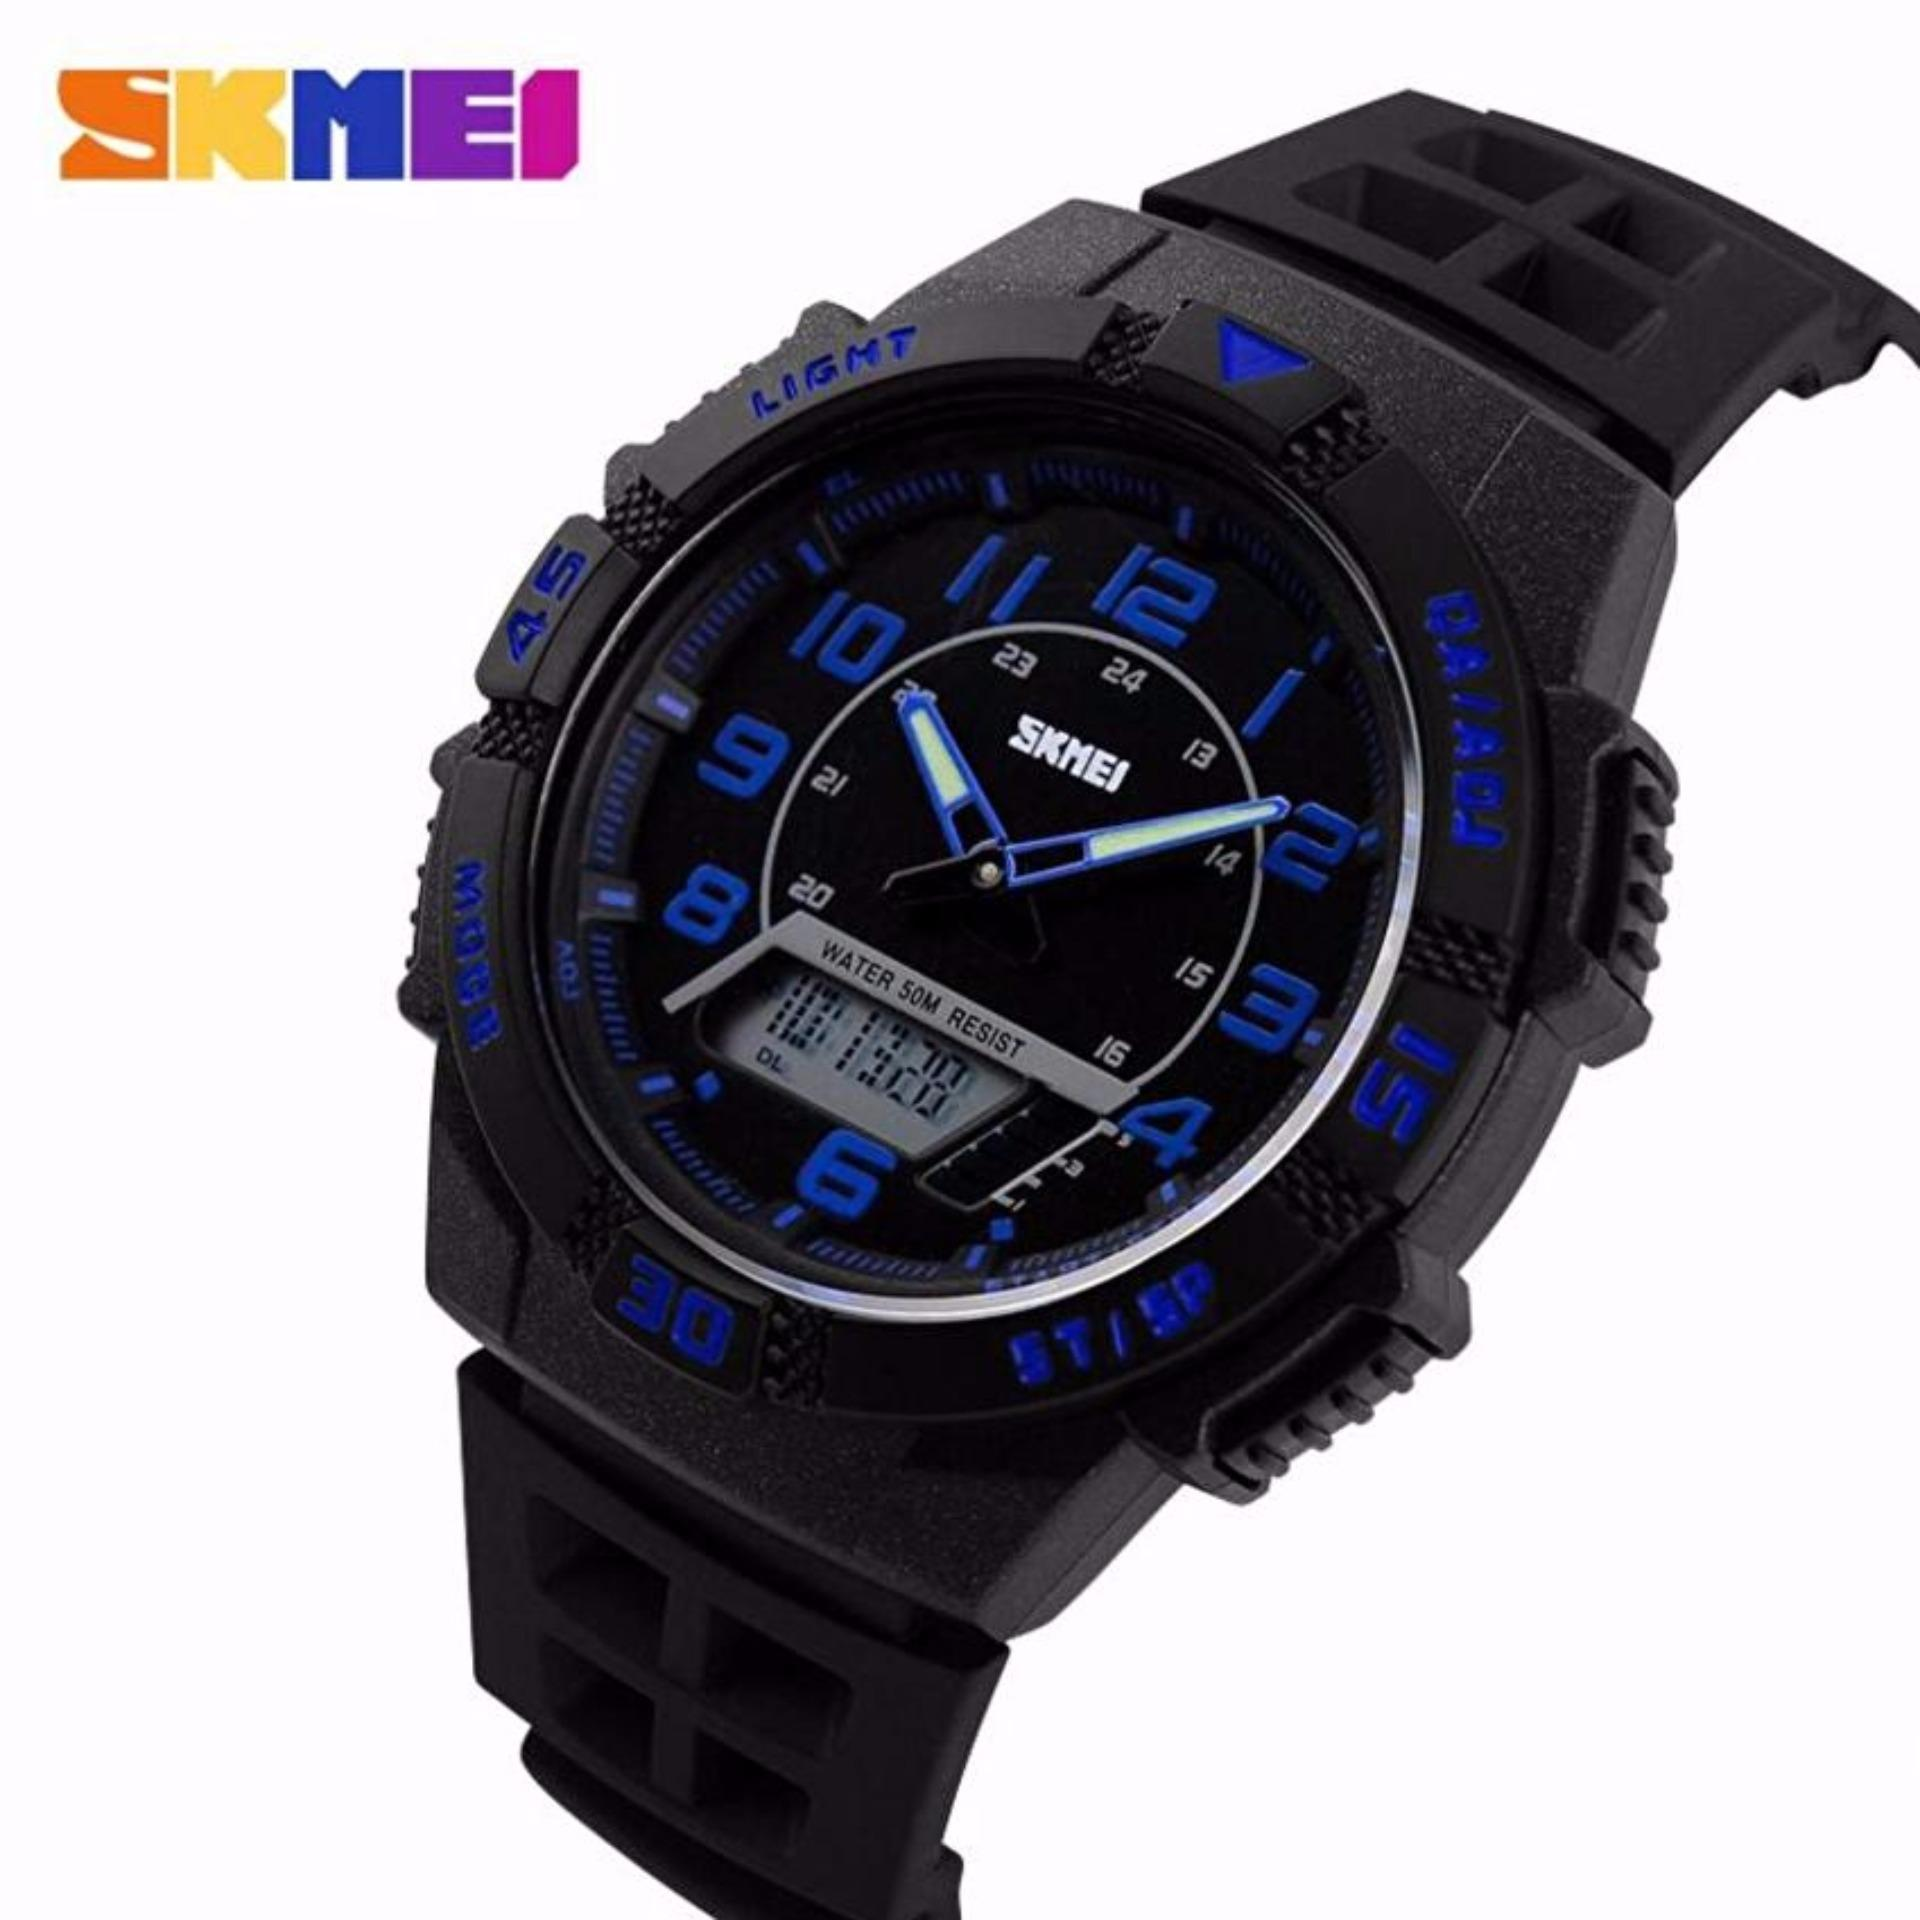 SKMEI Casio Dual Time Men Sport LED Watch Anti Air Water Resistant WR 50m AD1065 Jam